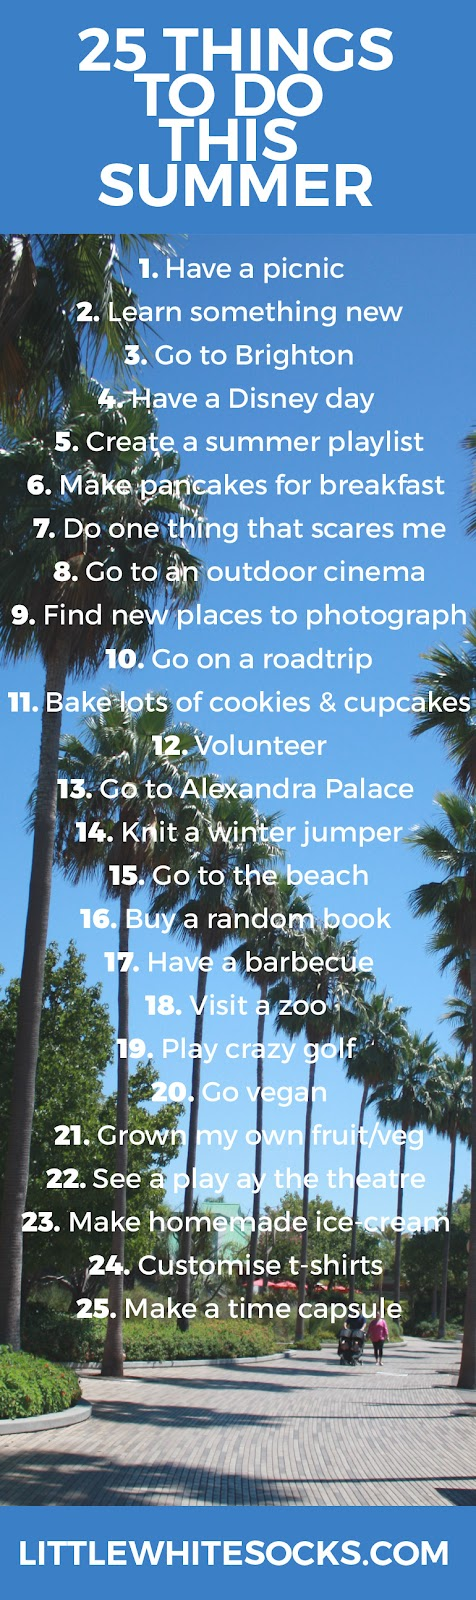 things to do in summer bucketlist